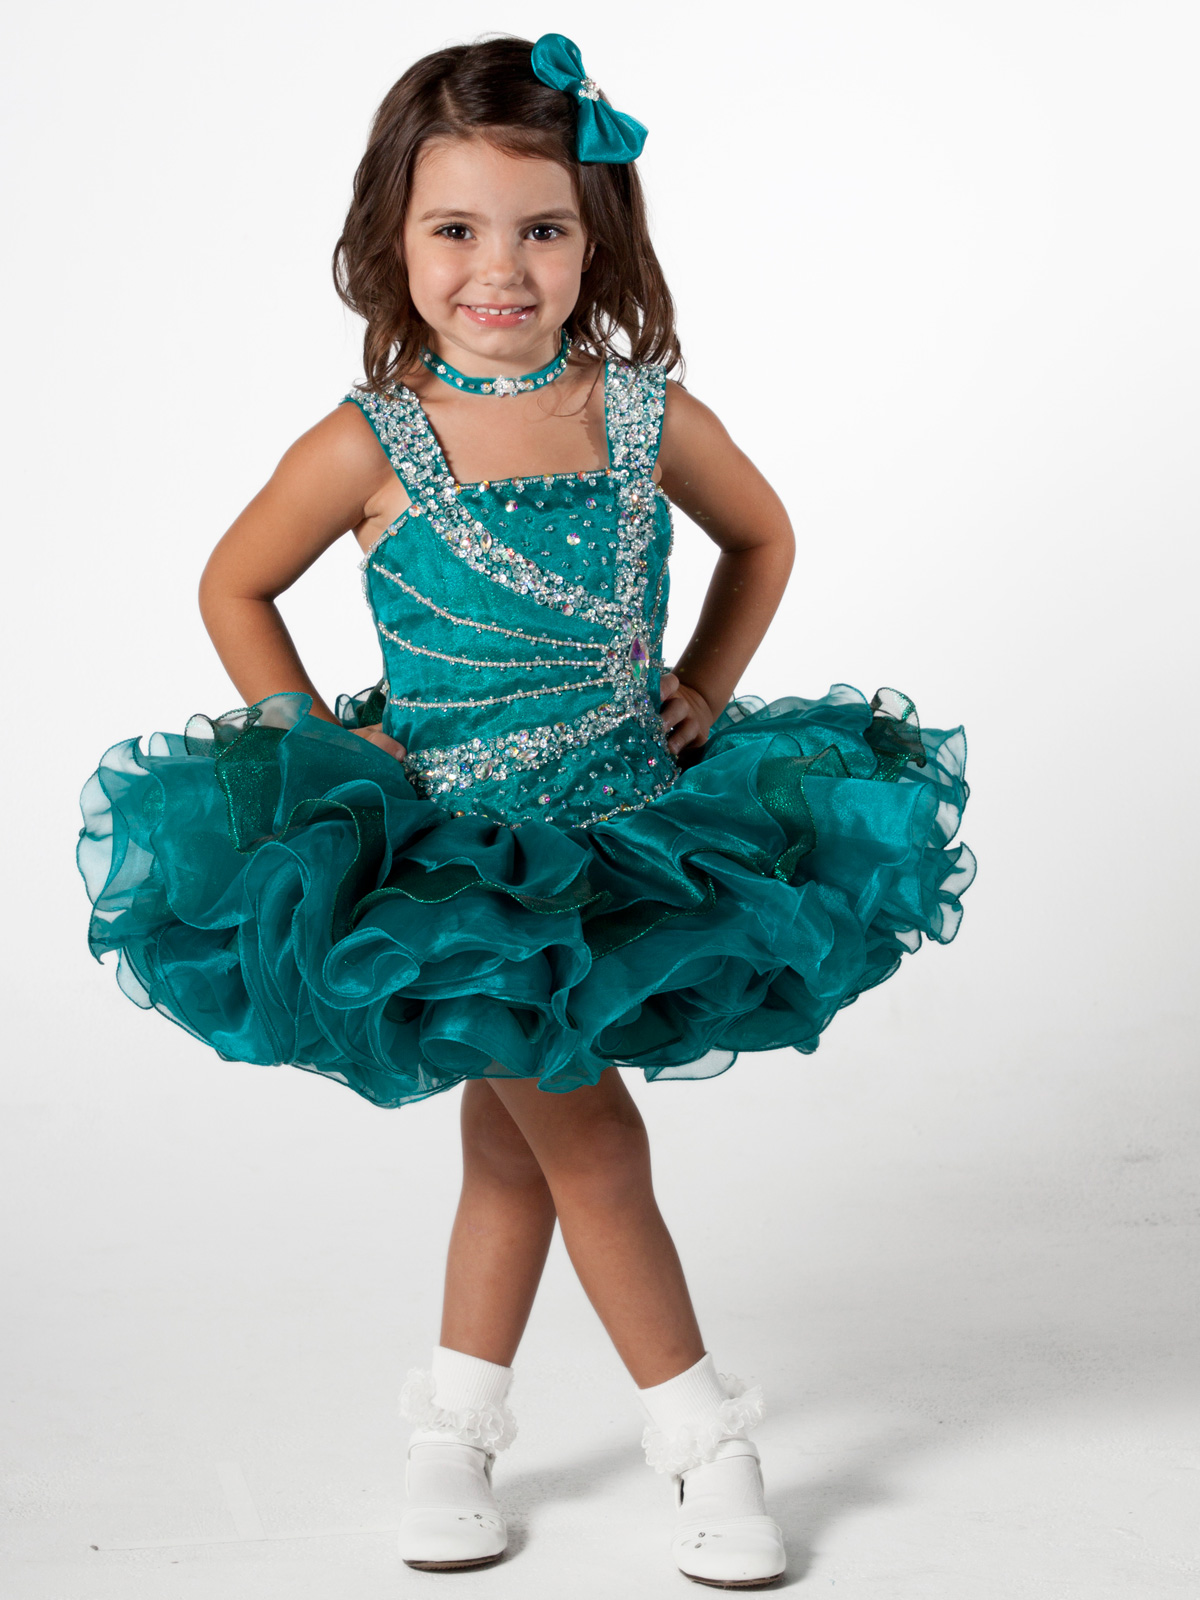 Toddler Pageant Dresses  PageantDesigns.com